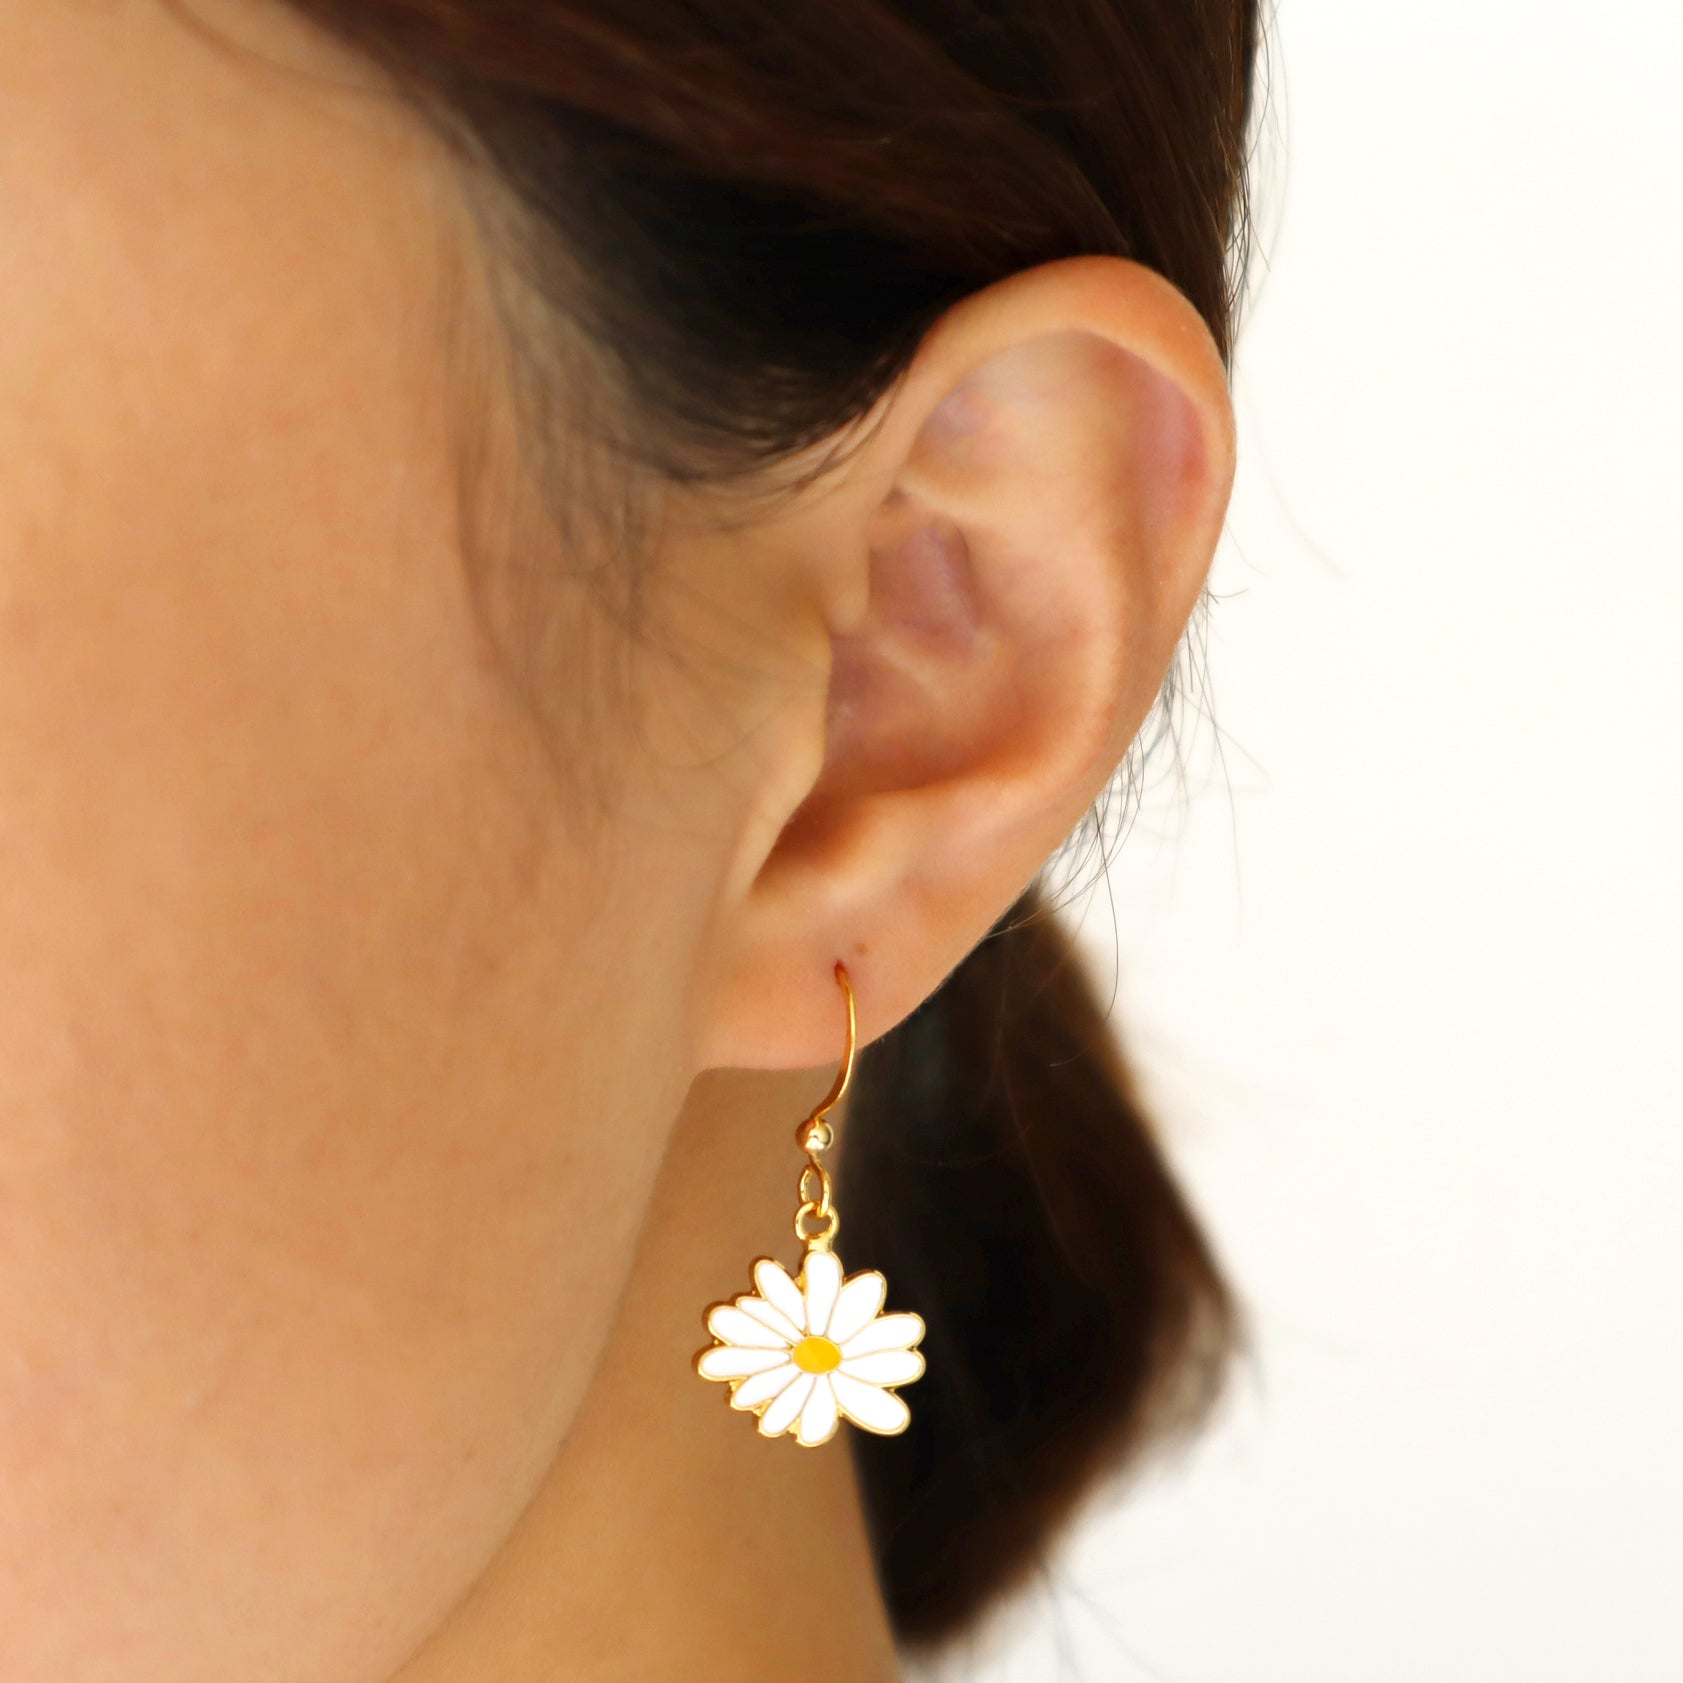 Li'l Daisy Enamel Stud Earrings